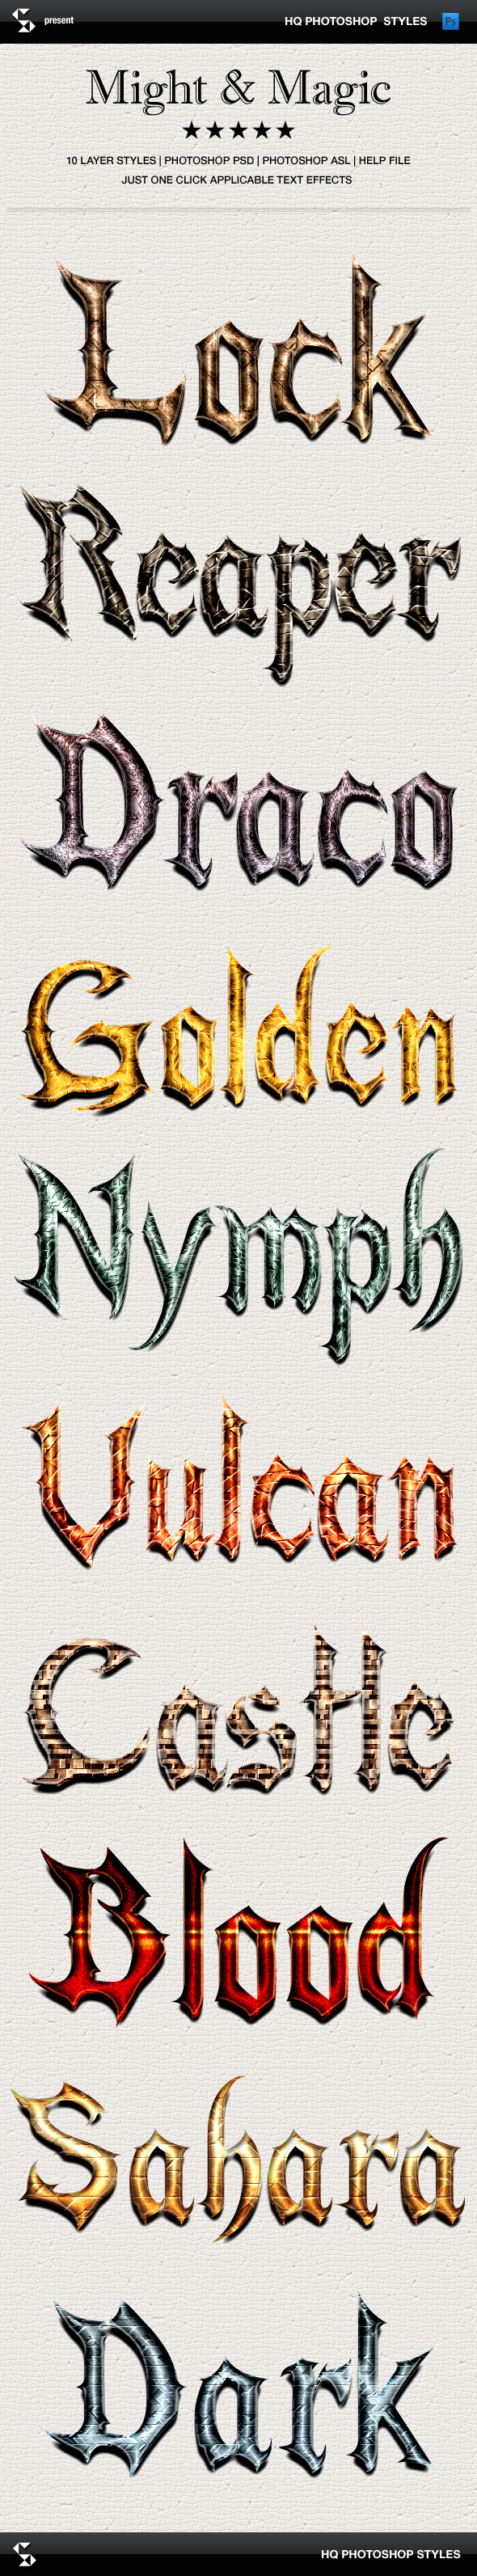 Fantasy styles - Might and Magic - Text Effects Styles